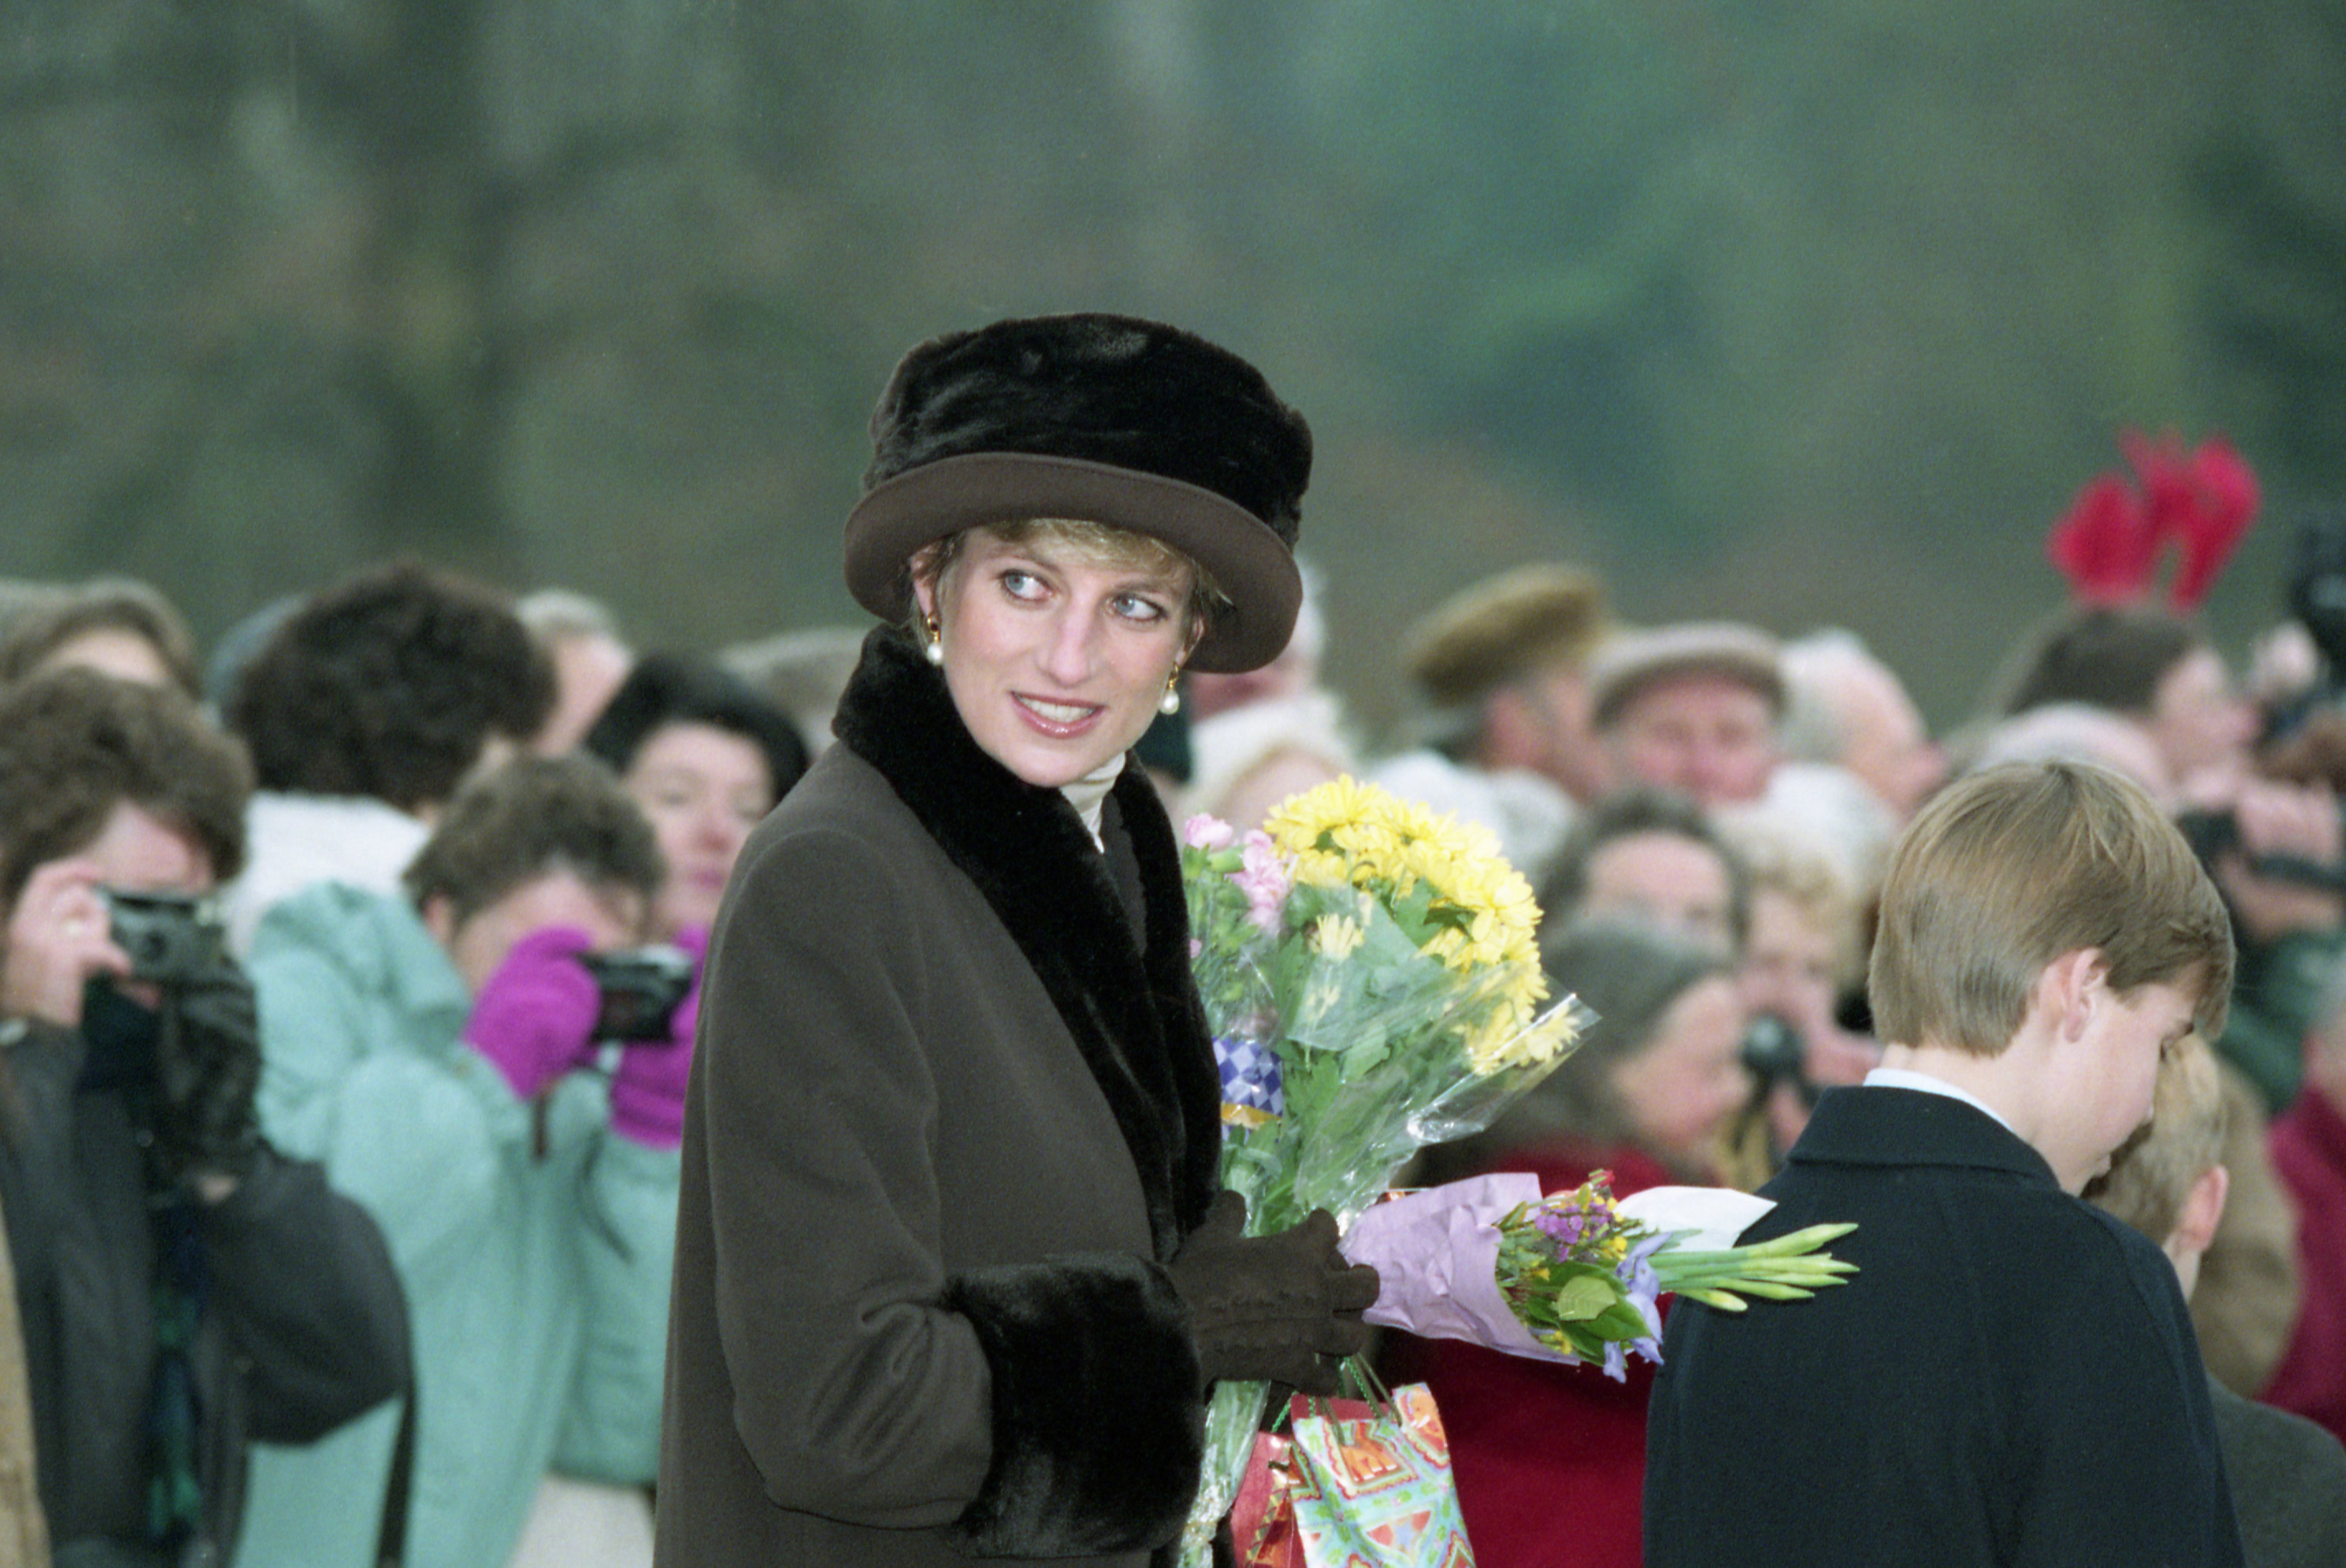 Princess Diana, the Princess of Wales, with flowers and Christmas presents she received from the public outside the Sandringham Church, England, after the Christmas Day service on Dec. 25, 1994. The Princess attended the service with the rest of the British Royal family and several hundred people lined the road outside the Church to bid the Royal family happy Christmas. (AP Photo/Max Nash)